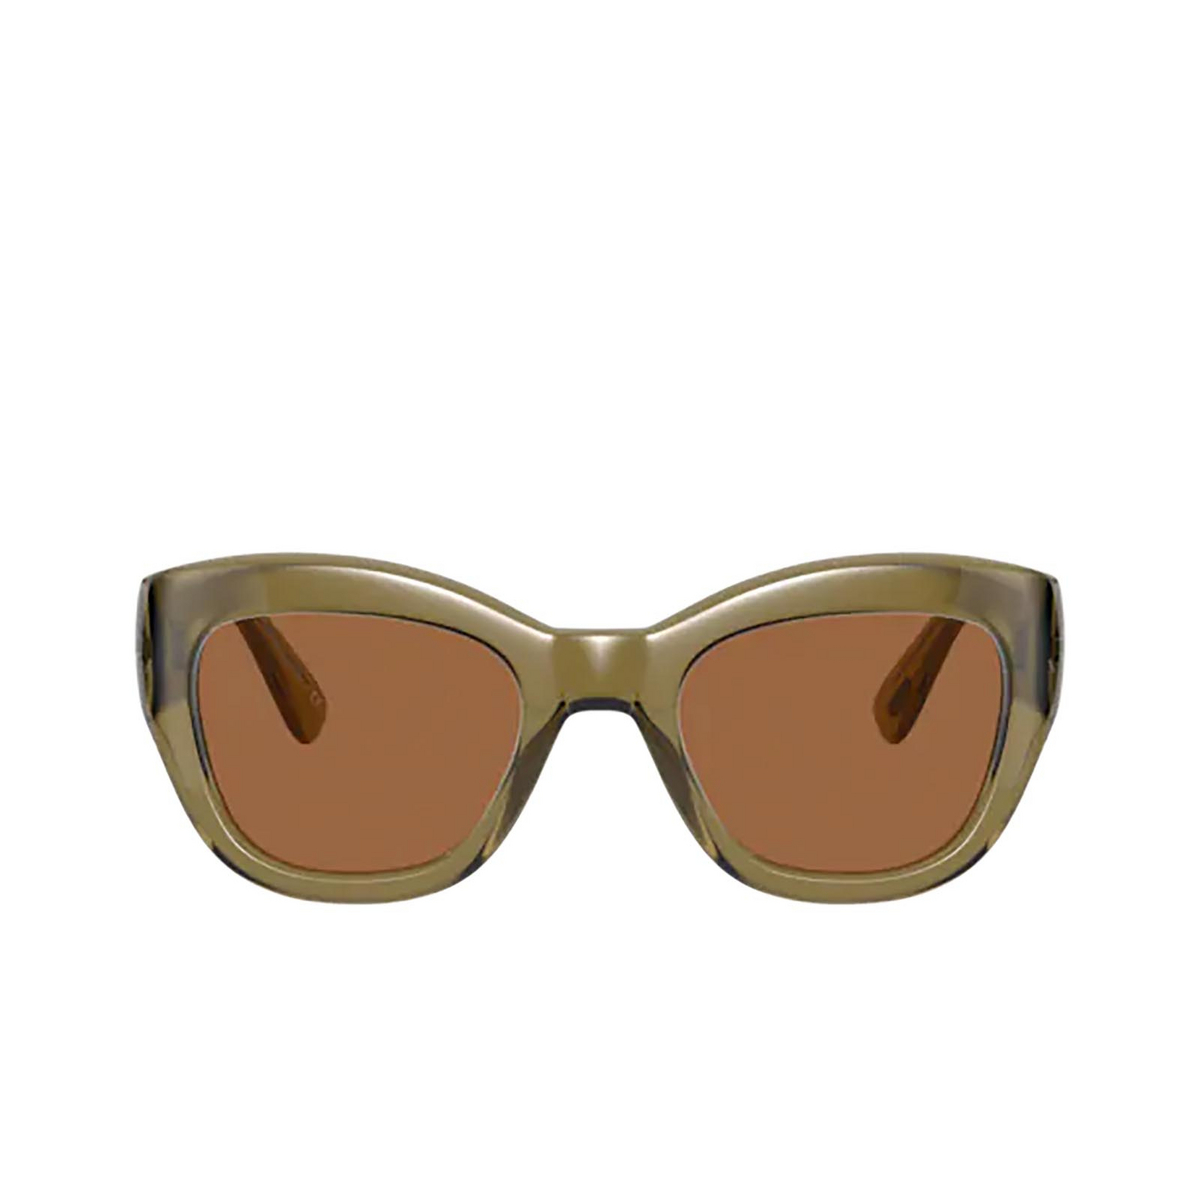 Oliver Peoples® Butterfly Sunglasses: Lalit OV5430SU color Dusty Olive 167873 - front view.